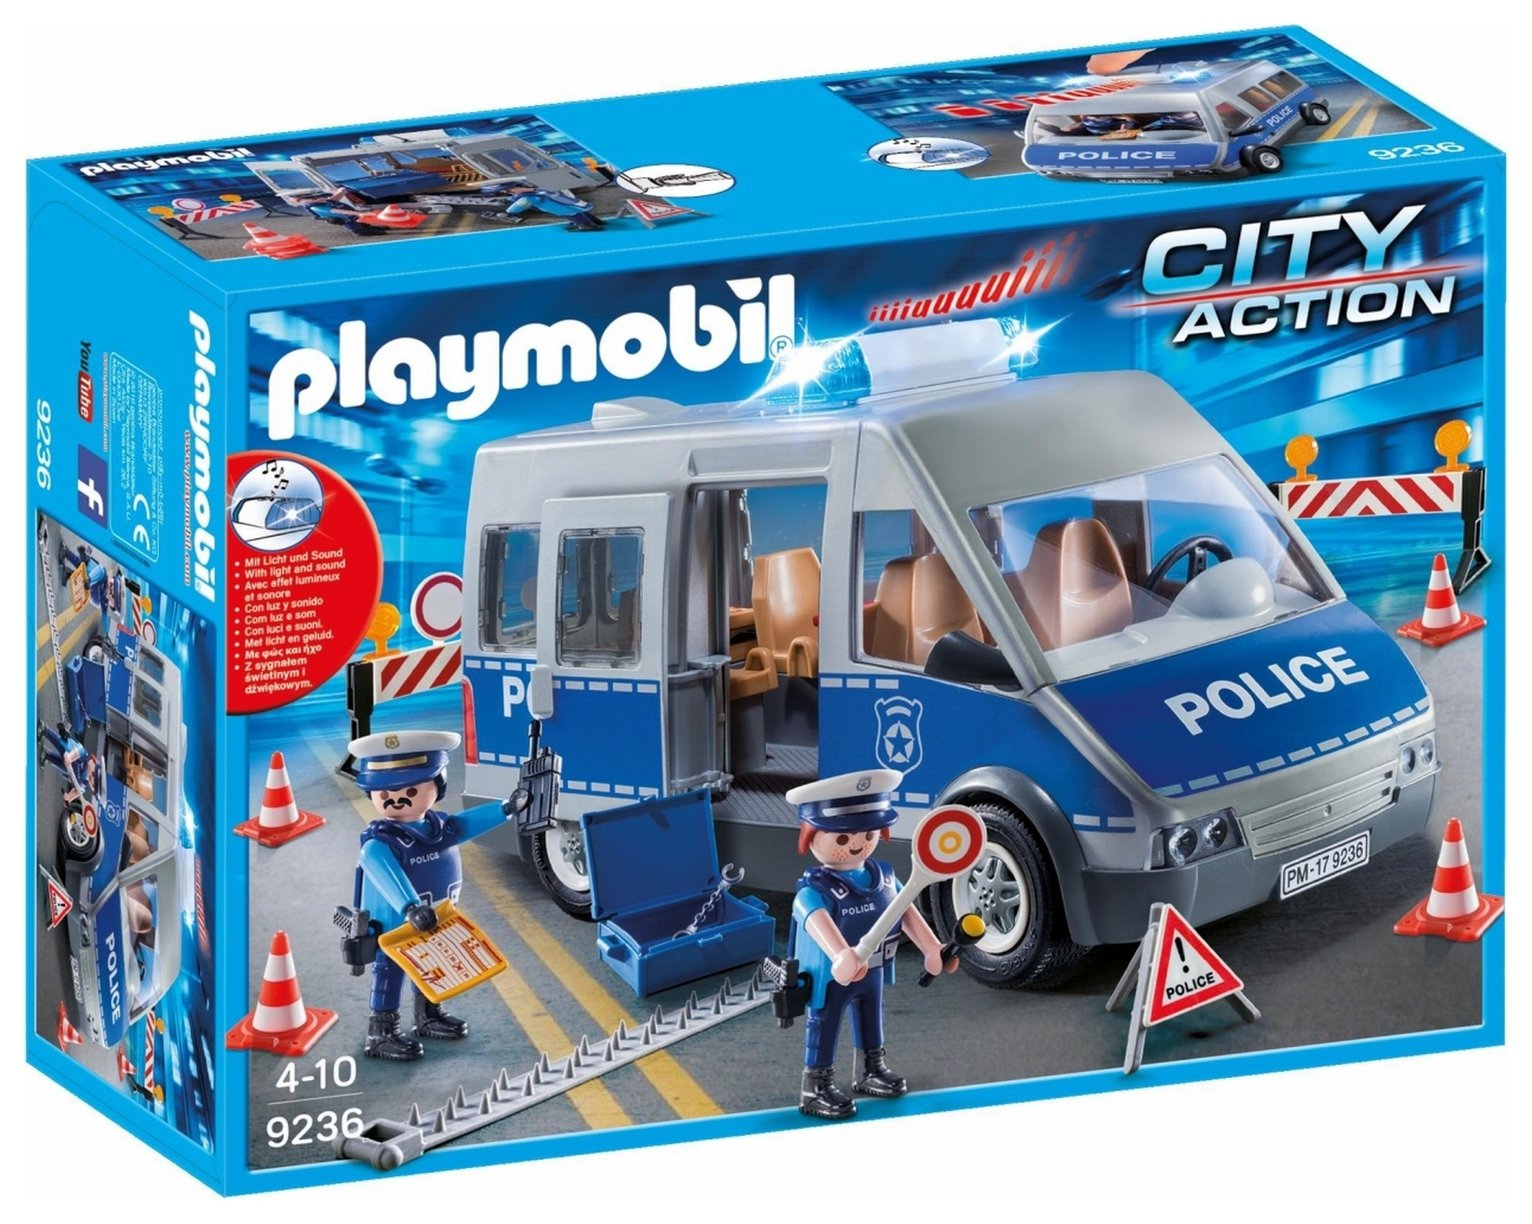 Playmobil 9236 City Action Policemen with Van